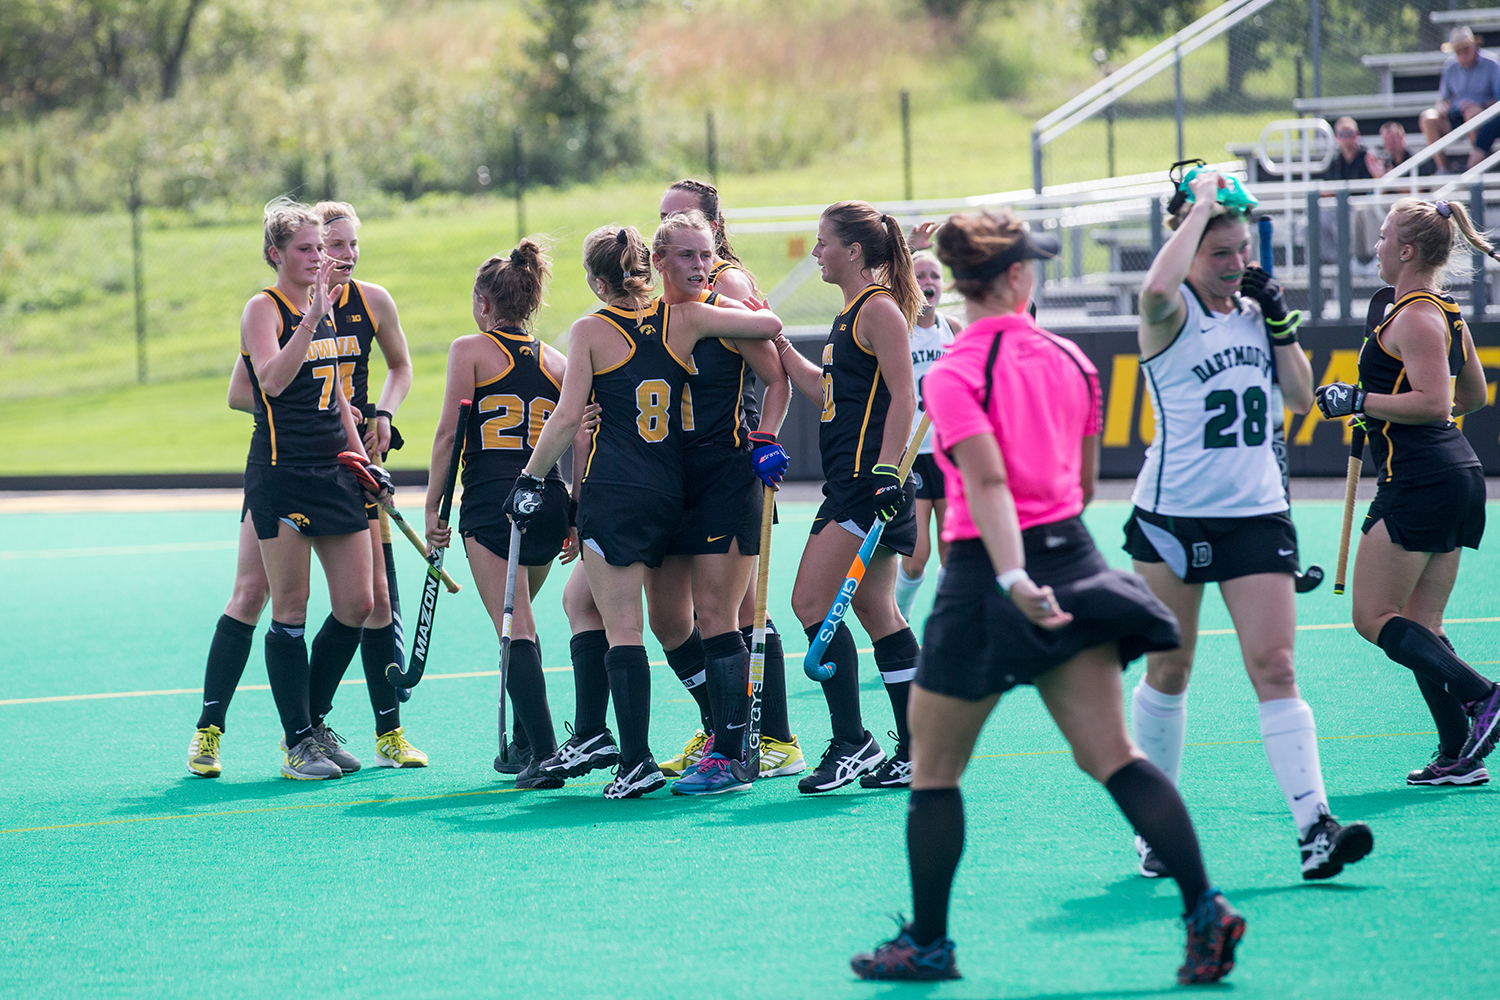 Iowa+players+celebrate+a+goal+during+a+field+hockey+match+between+Iowa+and+Dartmouth+College+at+Grant+Field+on+Friday%2C+August+31%2C+2018.+The+Hawkeyes+shut+out+the+Big+Green%2C+6-0.